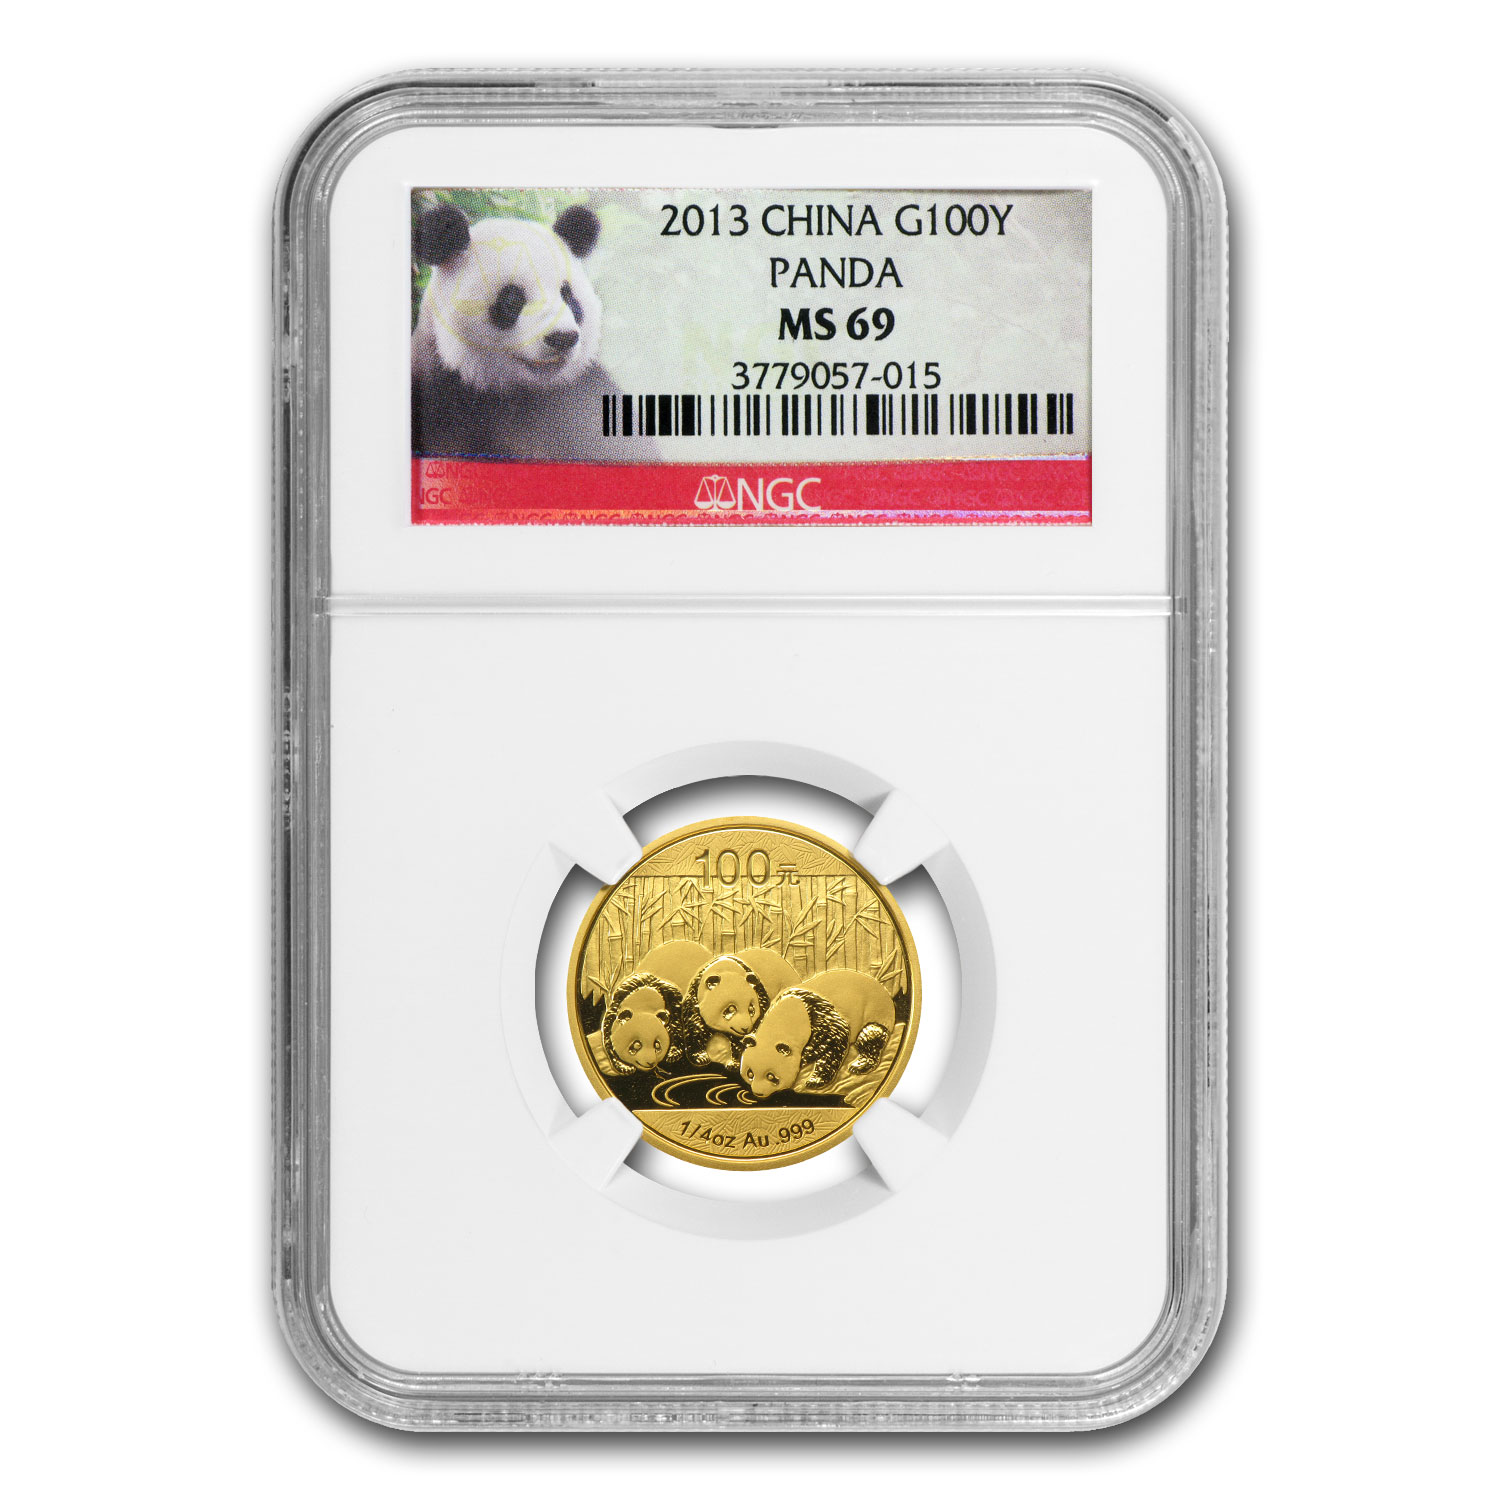 2013 China 1/4 oz Gold Panda MS-69 NGC